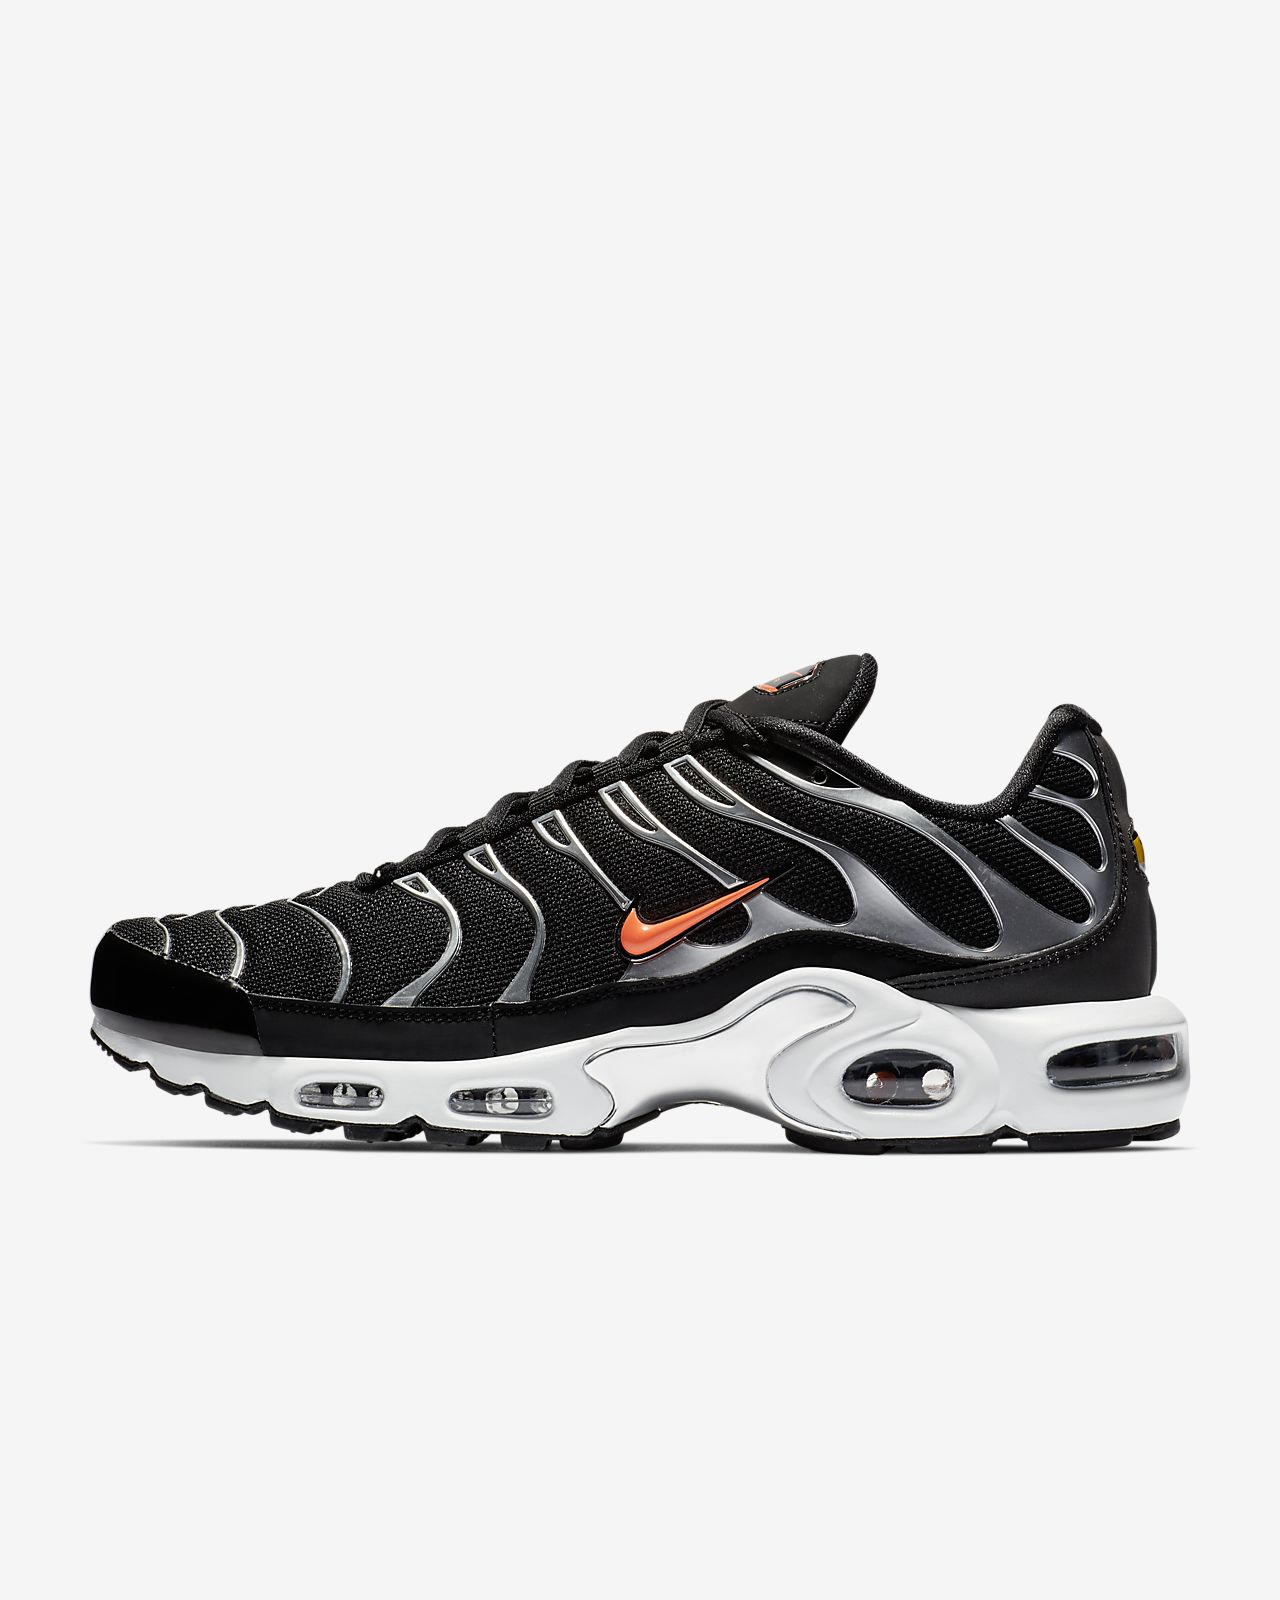 fcf907d05d8d Nike Air Max Plus TN SE Men s Shoe. Nike.com IE